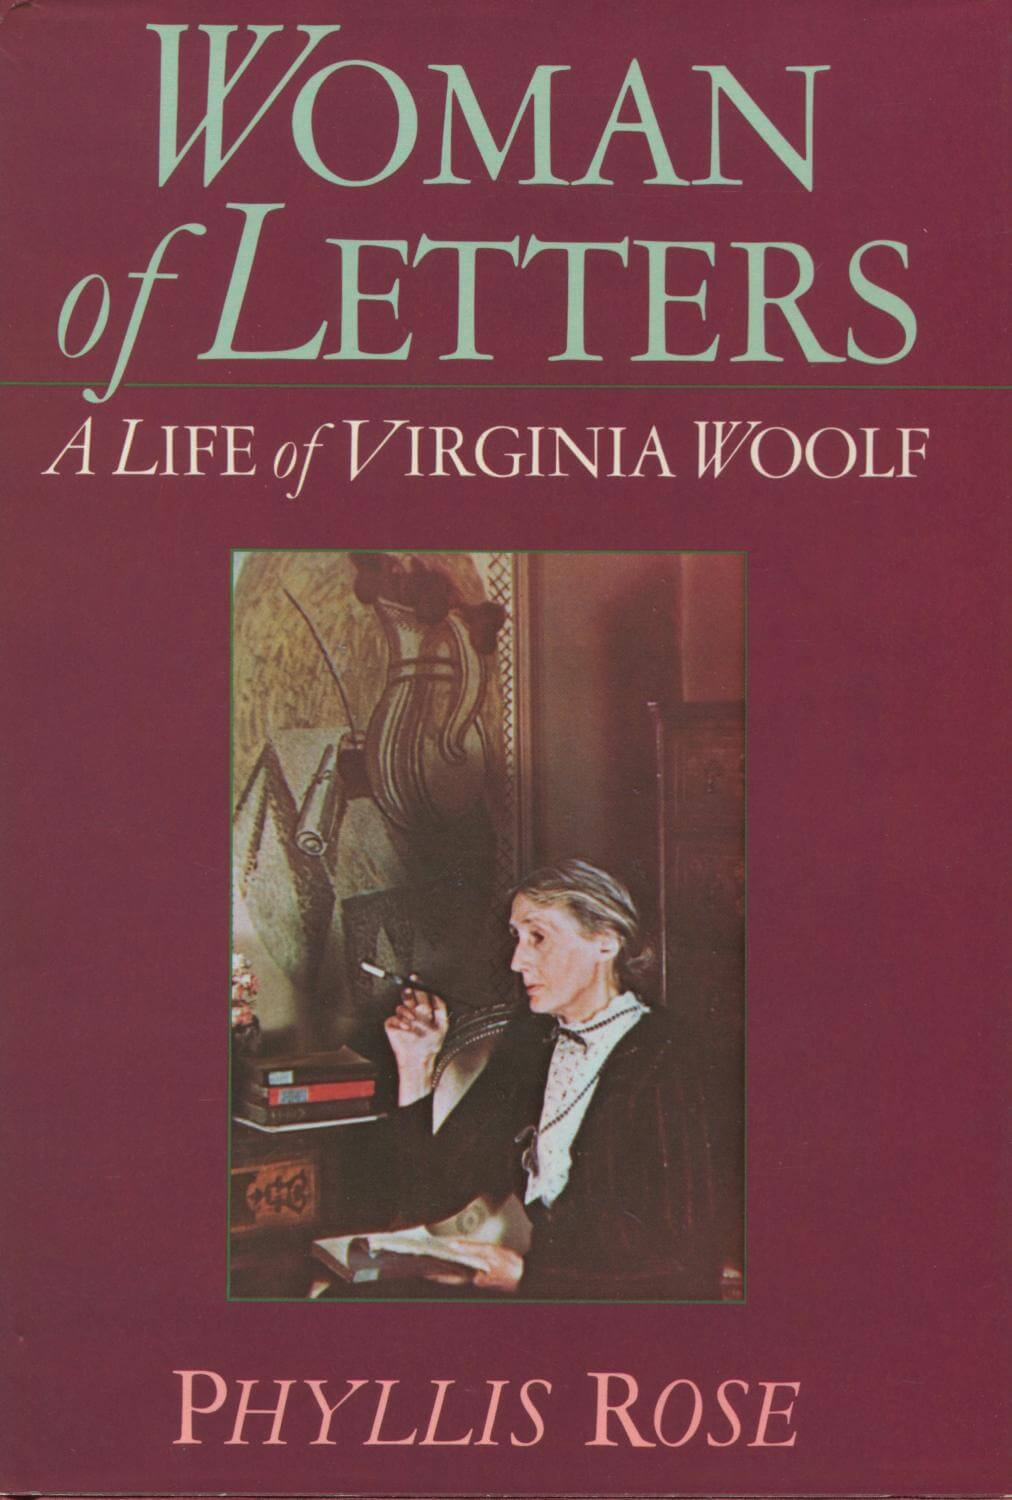 cover of Woman of Letters A Life of Virginia Woolf by Phyllis Rose